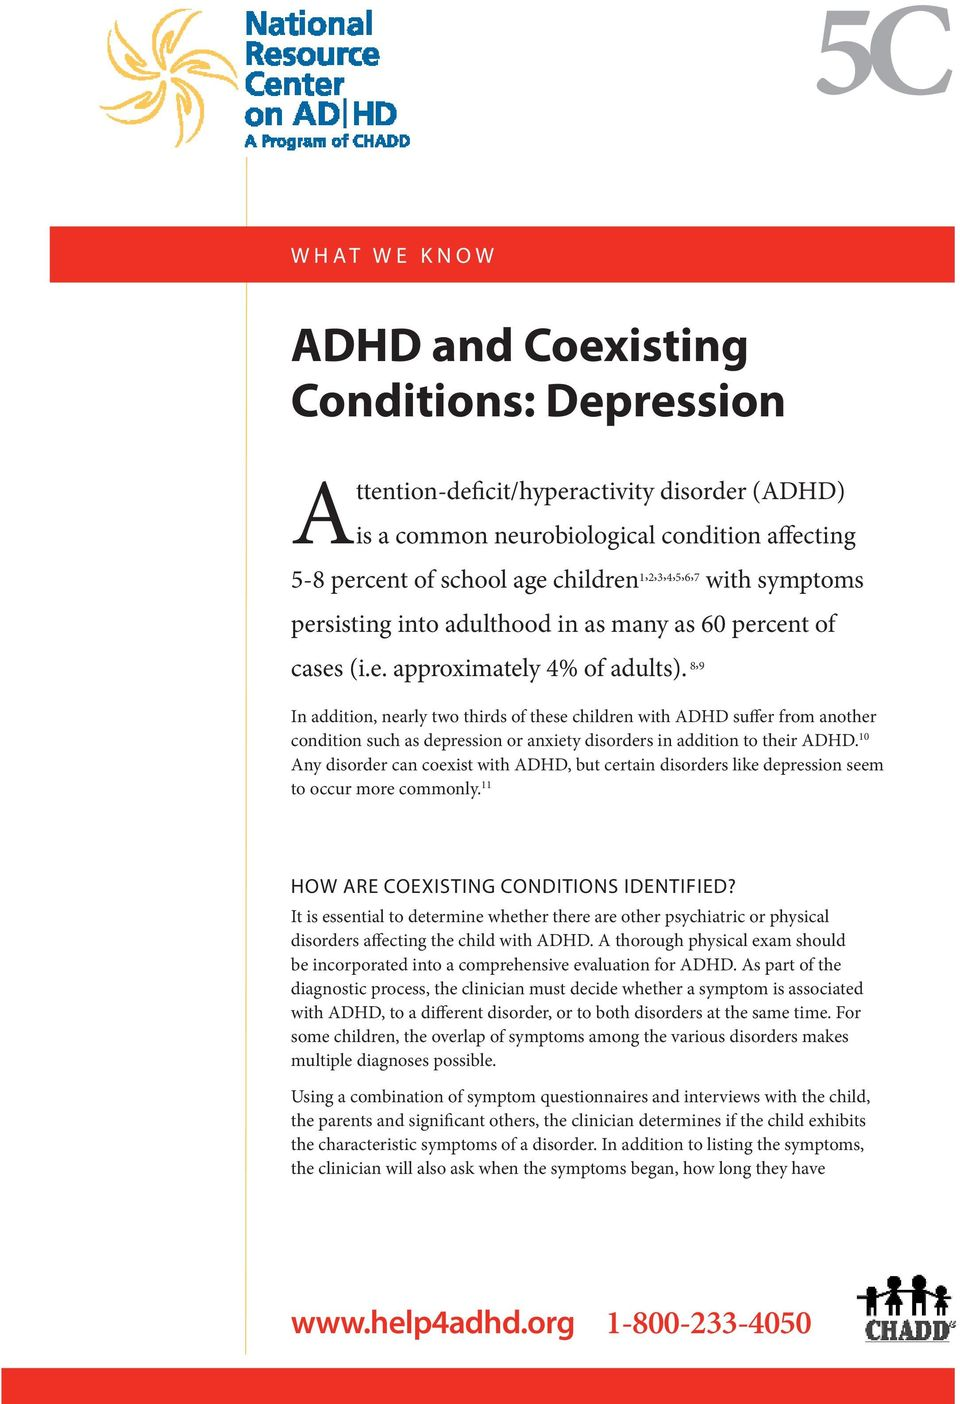 8,9 In addition, nearly two thirds of these children with ADHD suffer from another condition such as depression or anxiety disorders in addition to their ADHD.